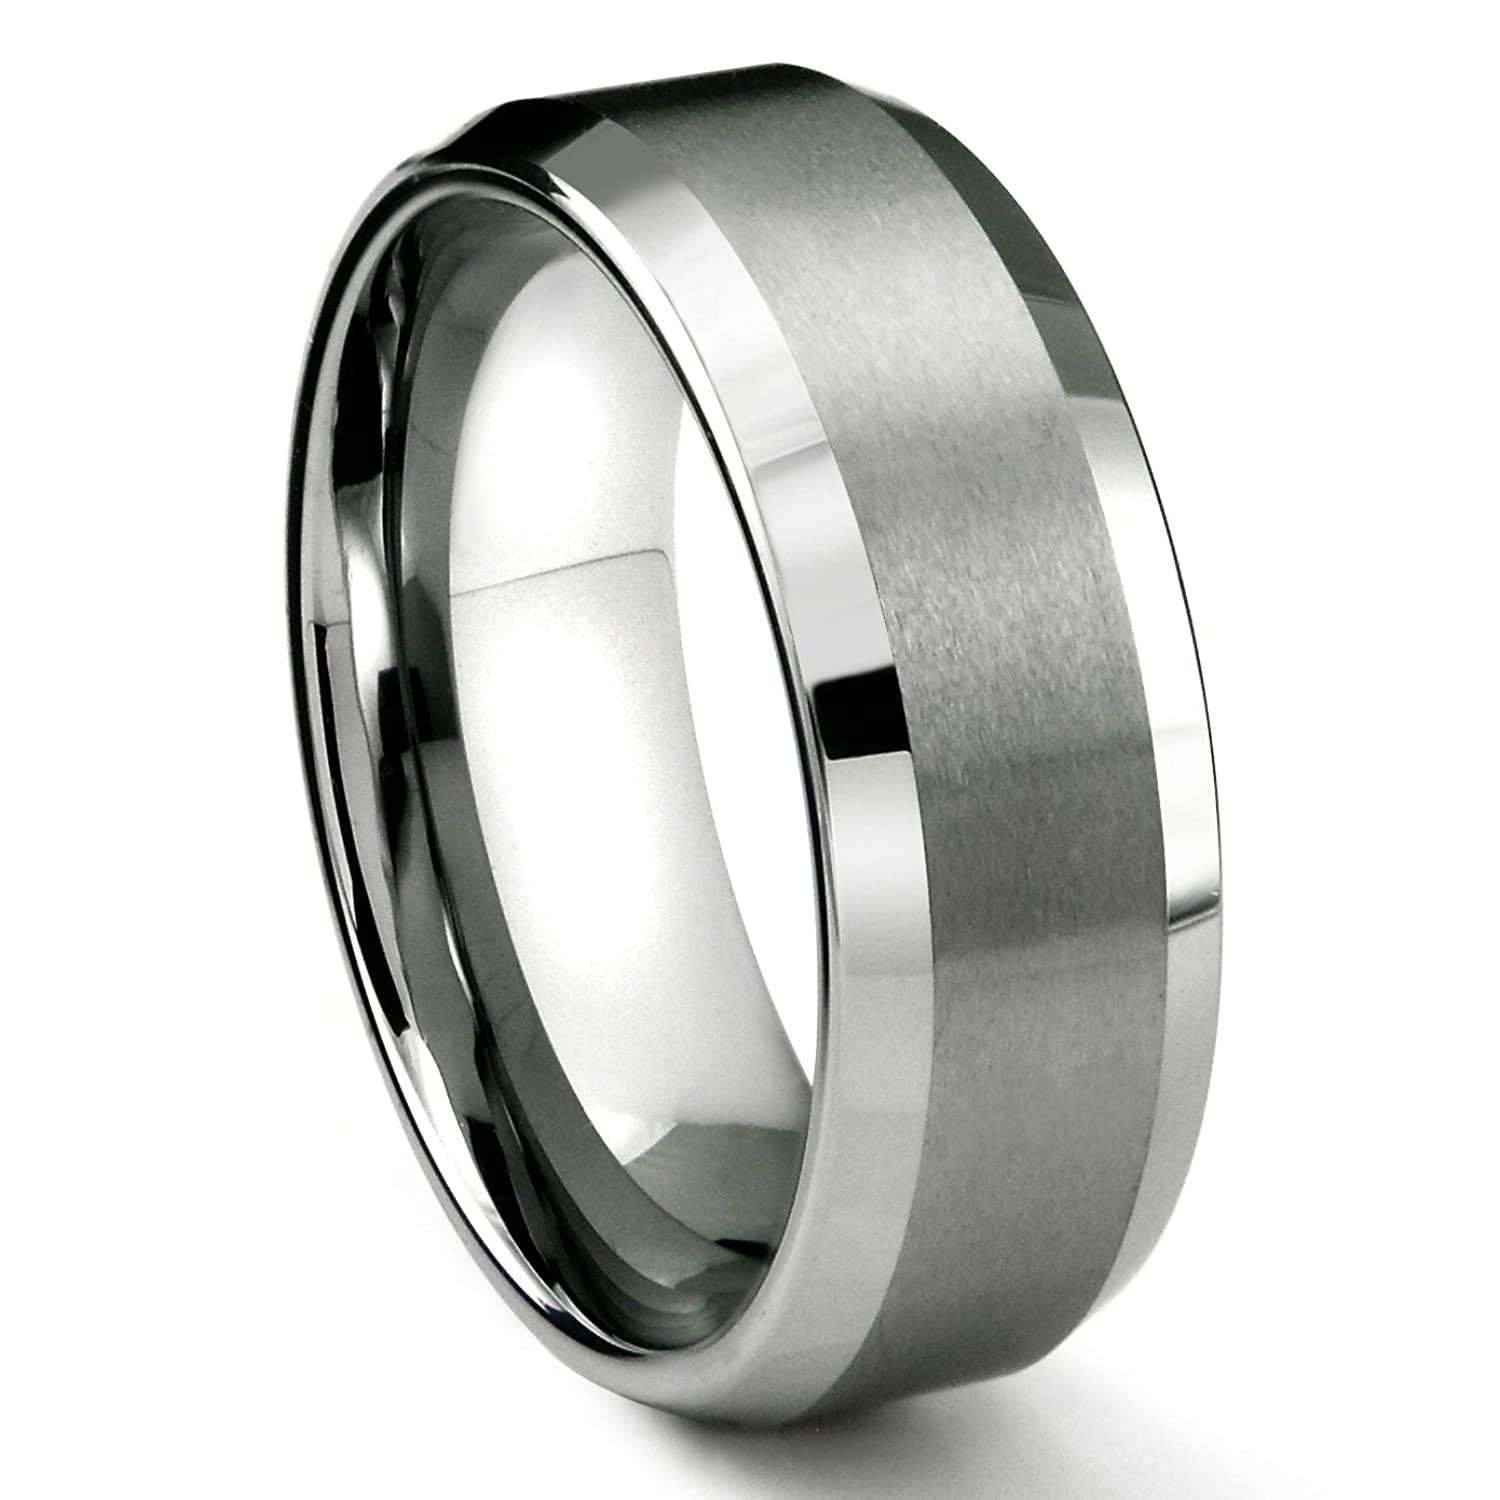 red tungsten carbide rings mens brushed scratch proof promise bands band engagement wedding anniversary ring products man male black